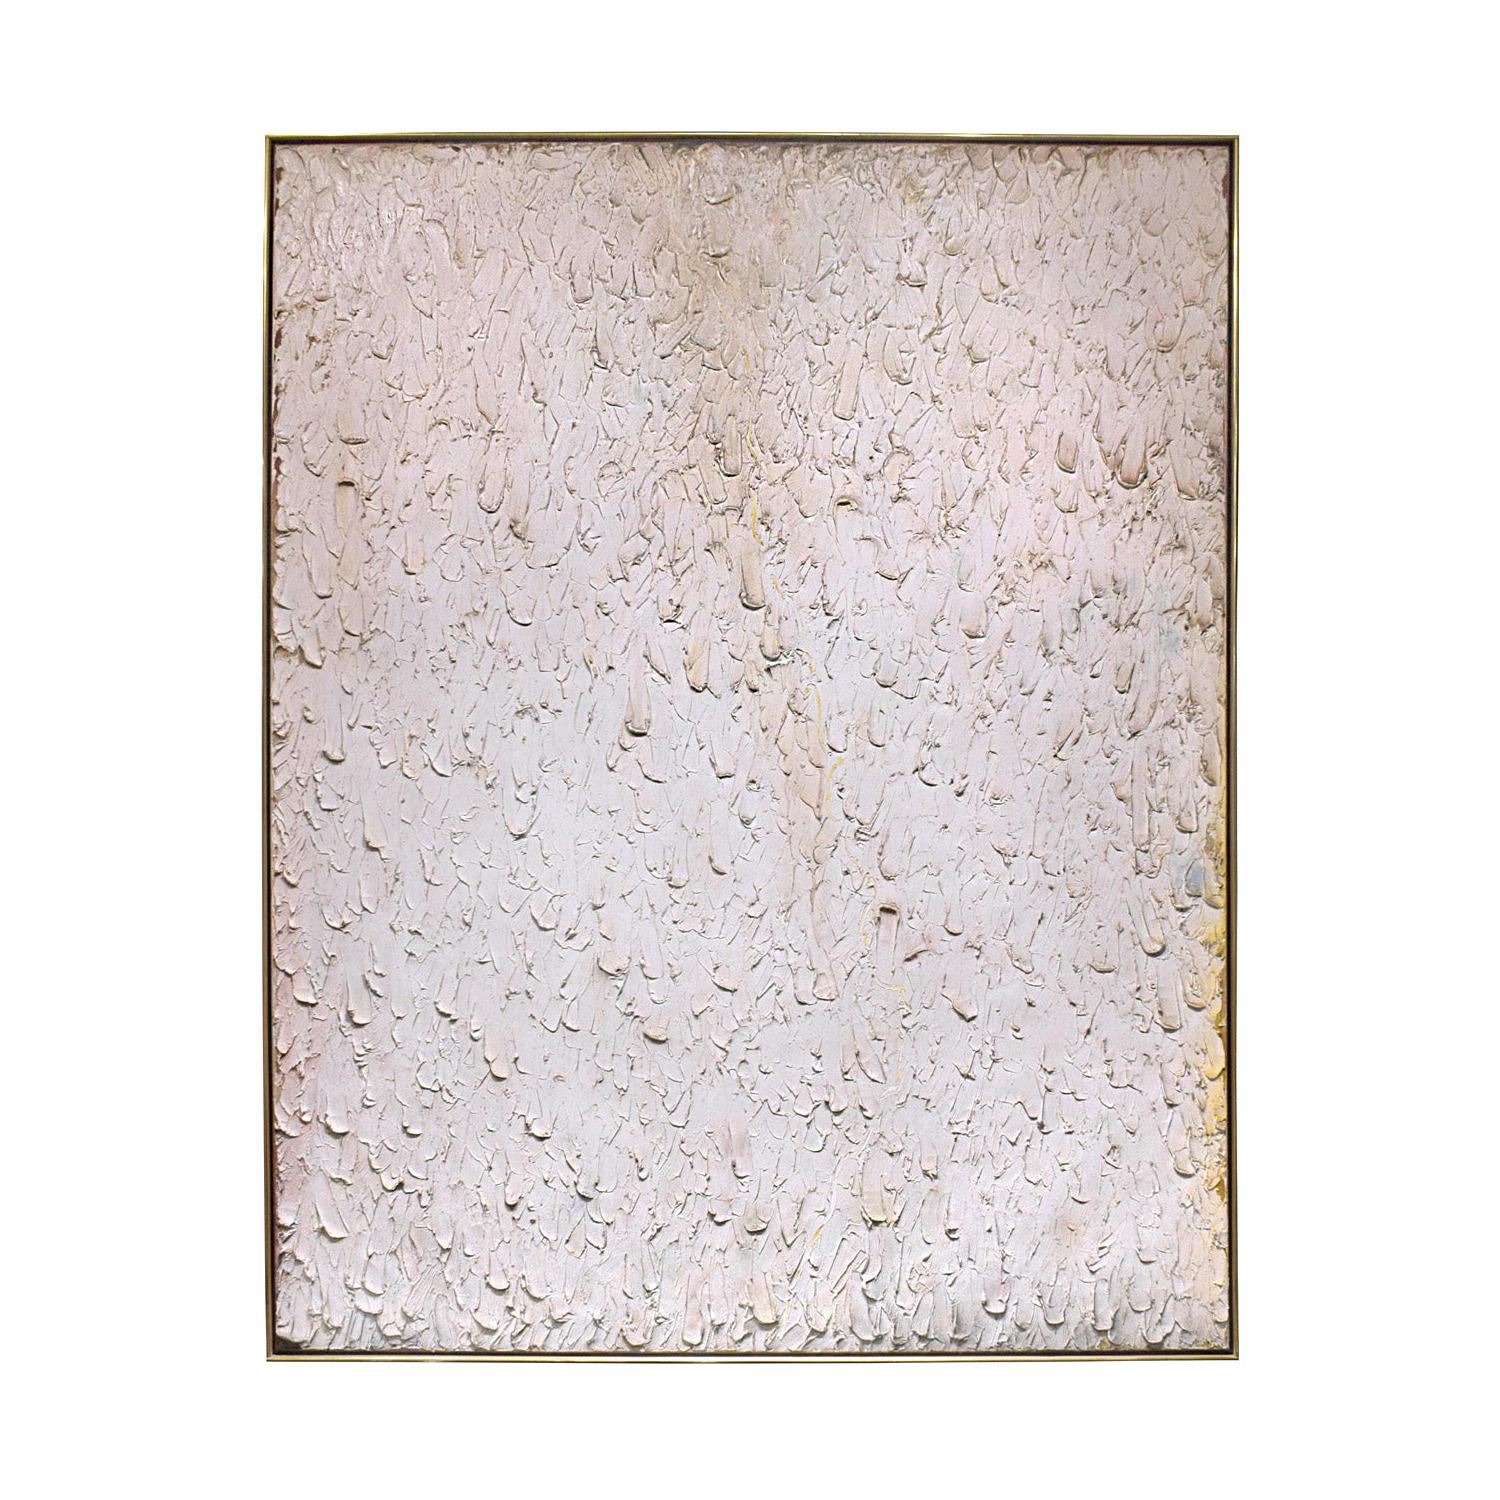 Stanley Boxer Large Textural Oil on Linen, 1980